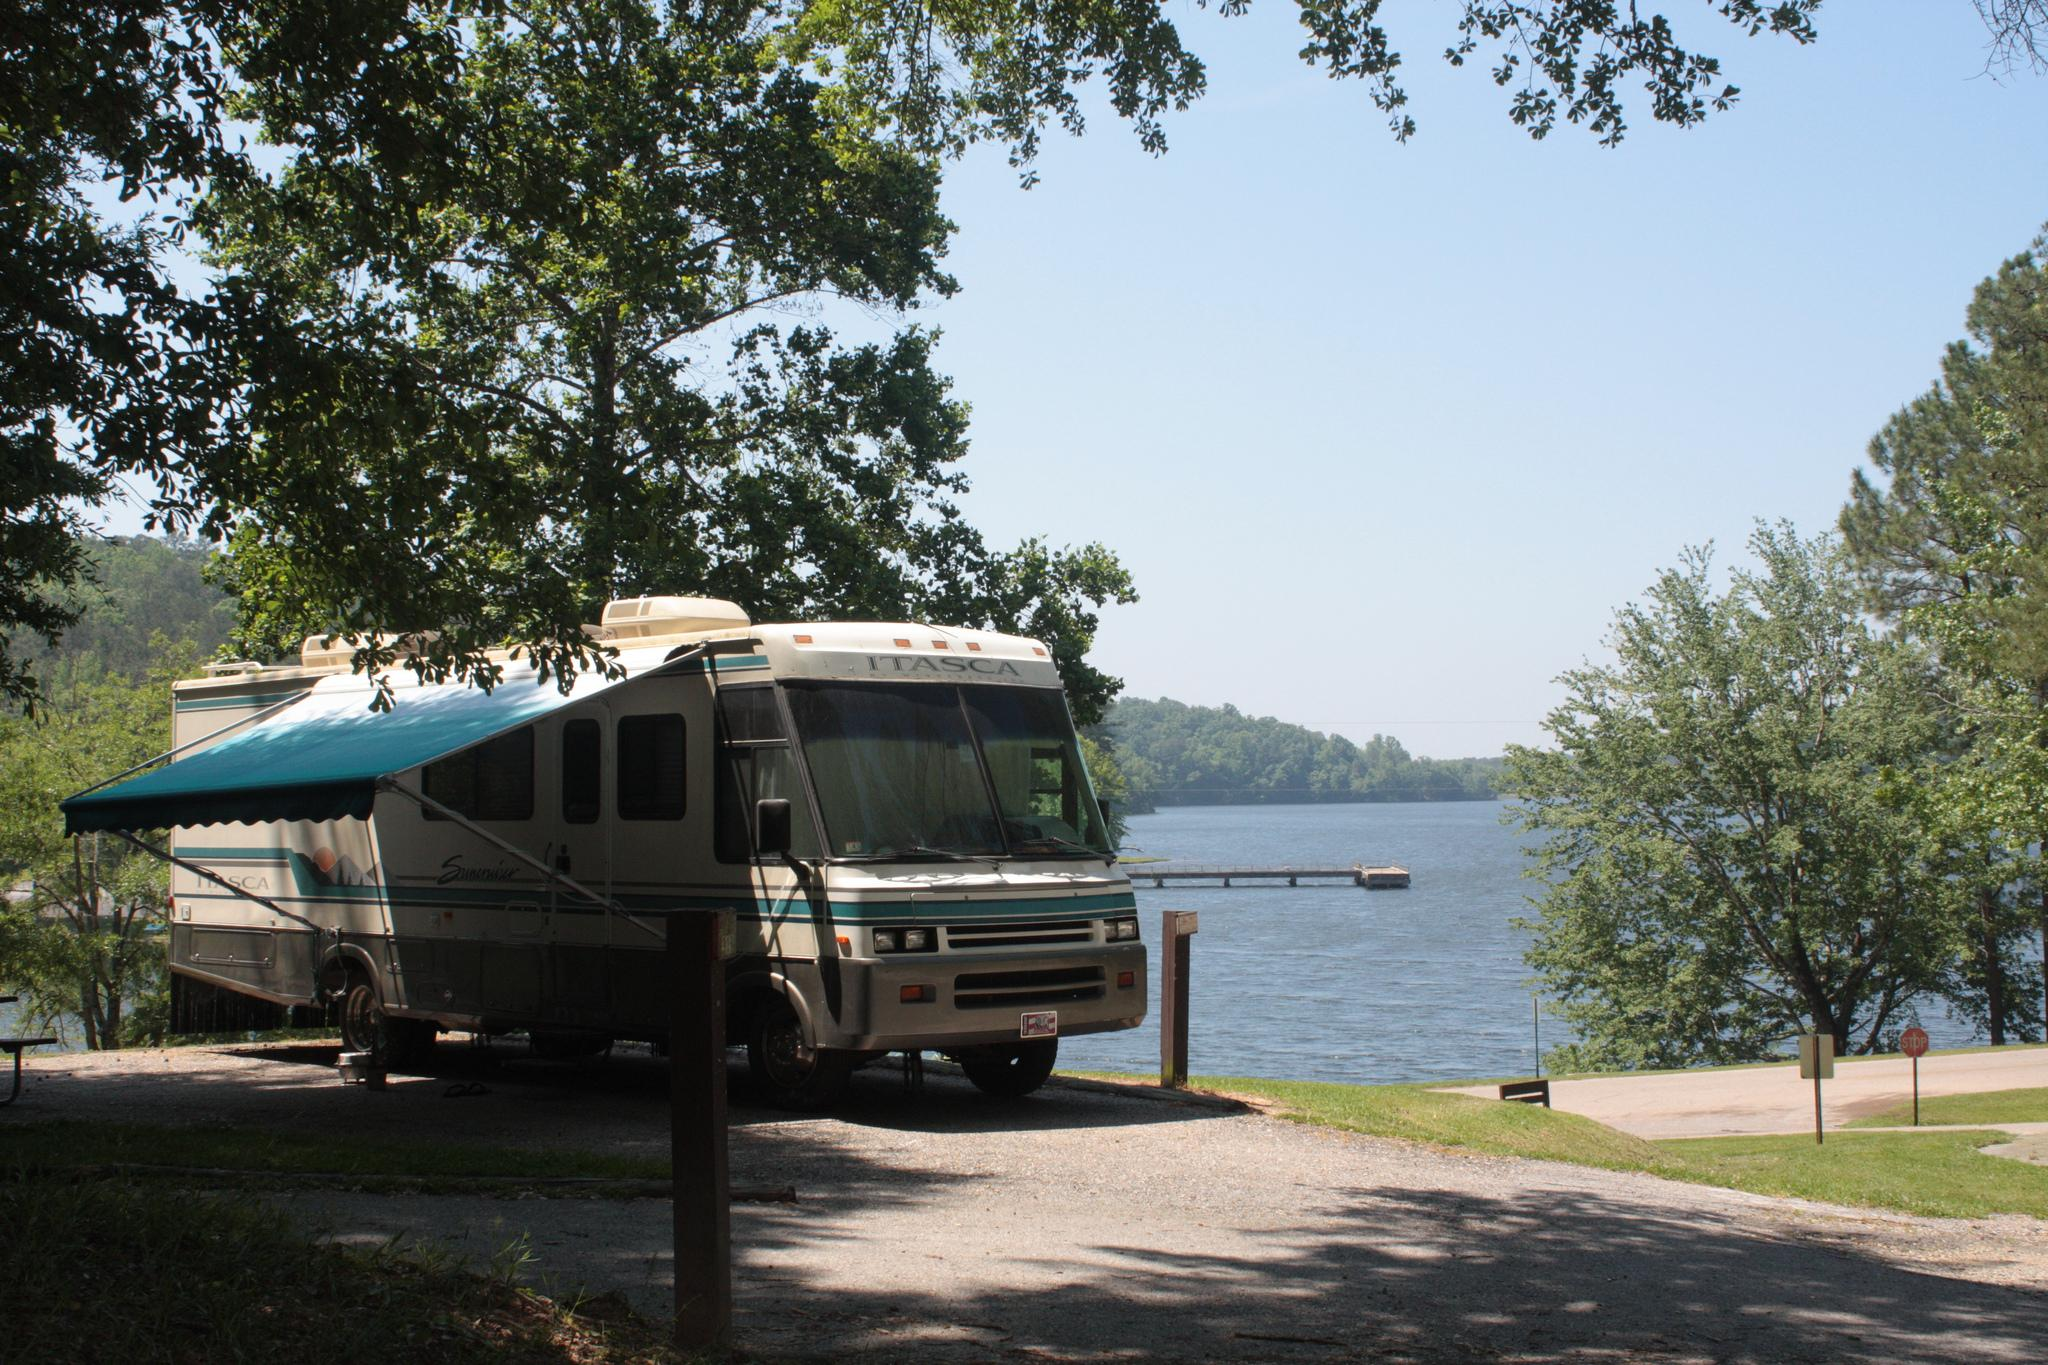 Lake Lurleen State Park Campground